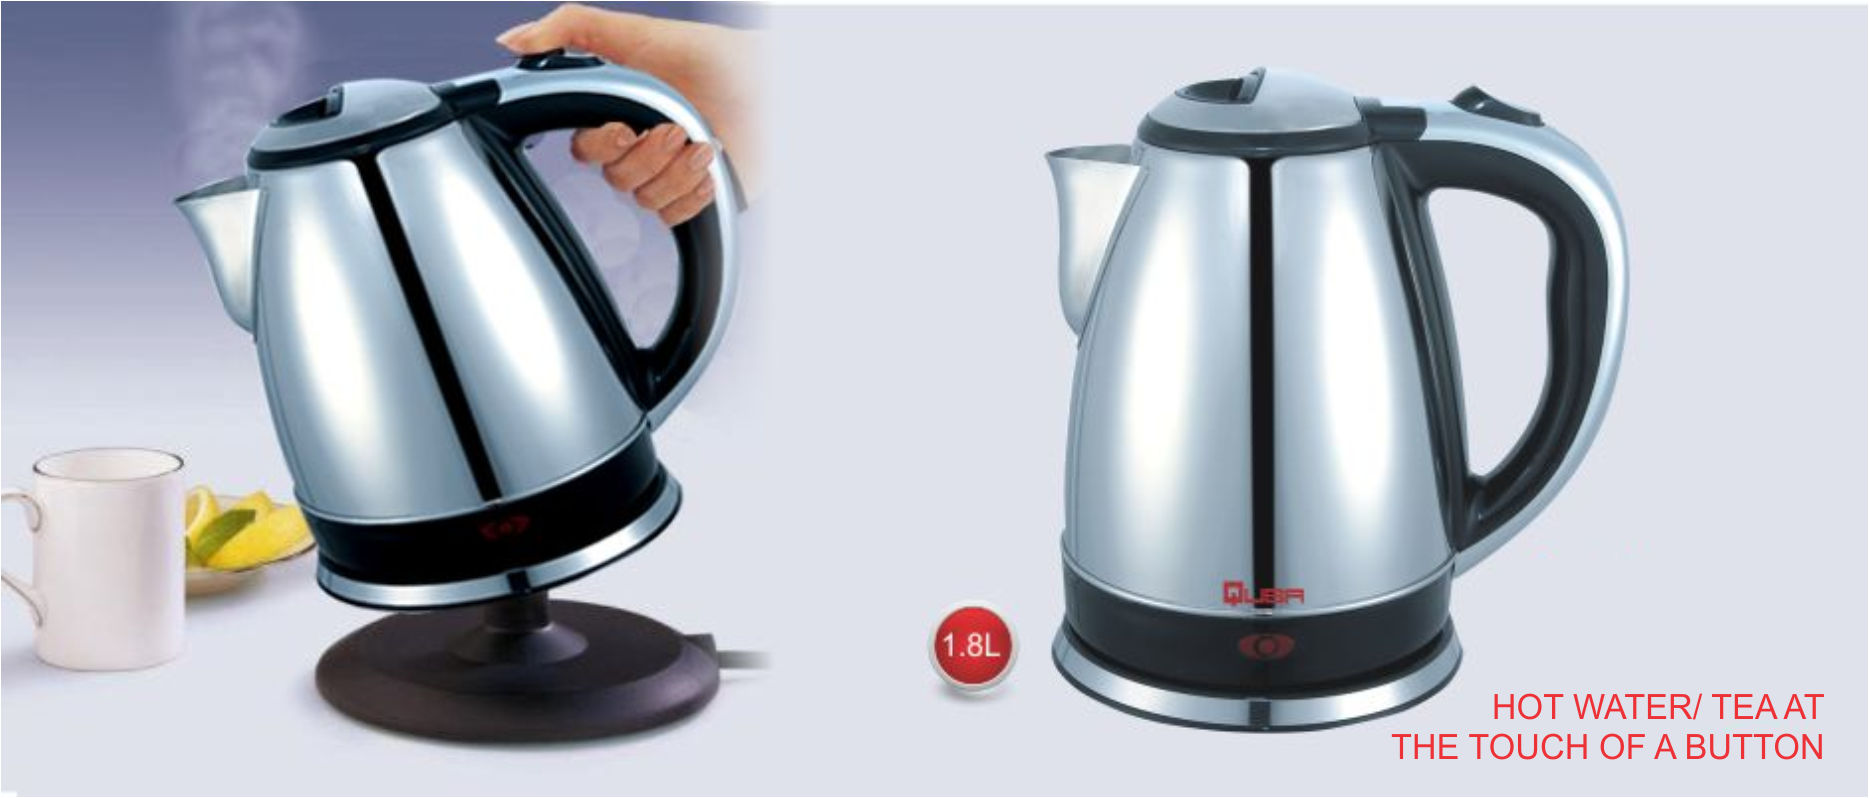 Kitchen Appliance Online Shopping India